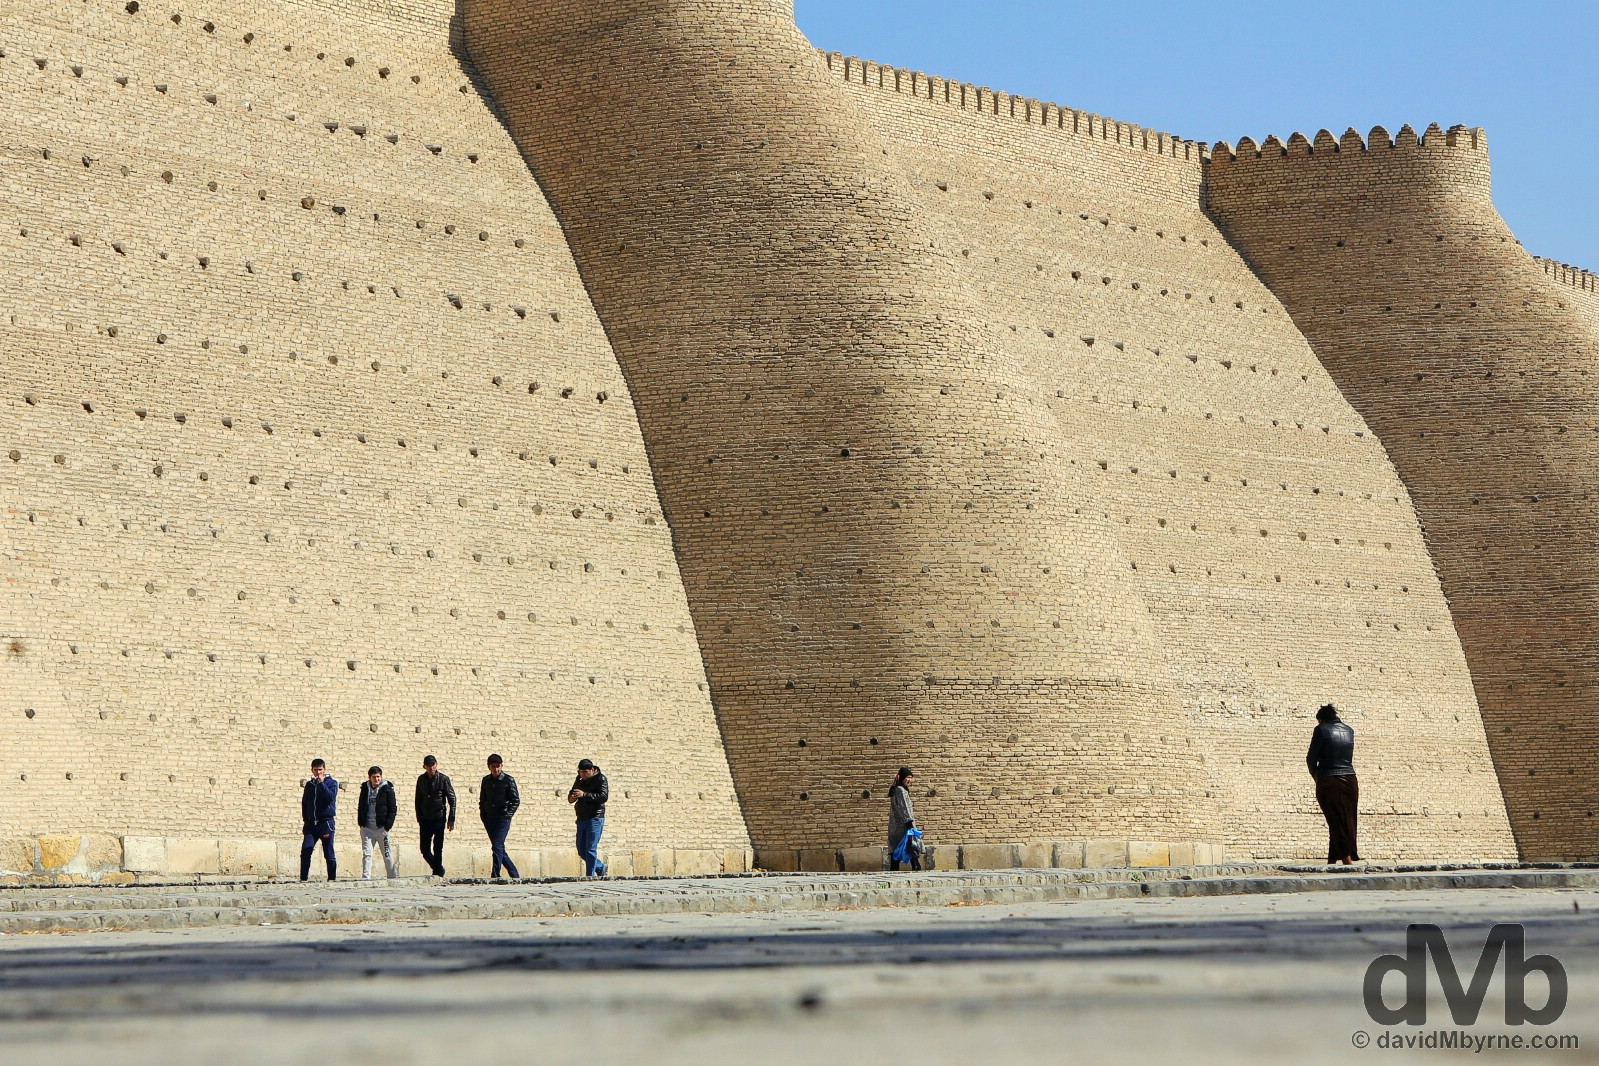 Outside the towering walls of the Ark citadel in Bukhara, Uzbekistan. March 11, 2015.